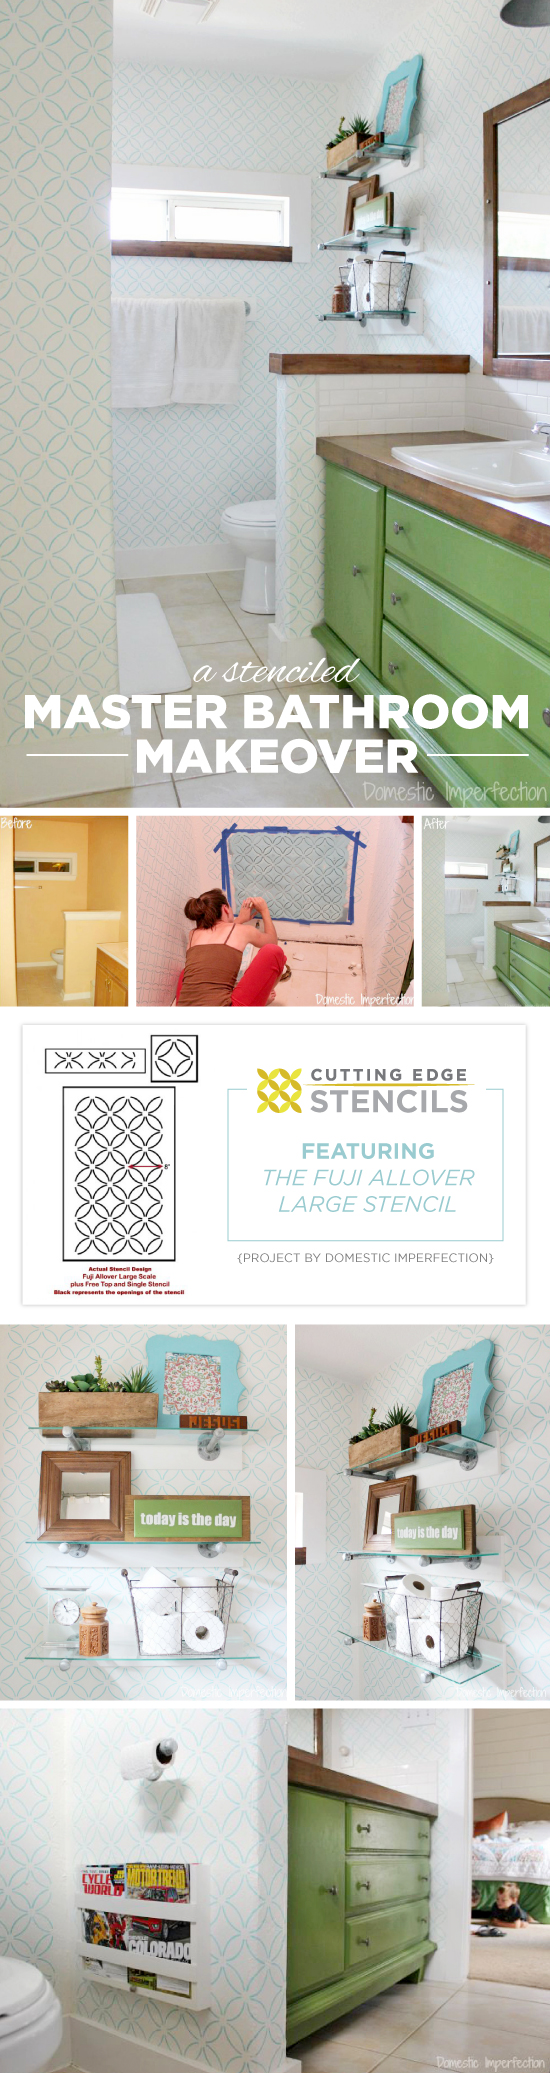 Cutting Edge Stencils shares a DIY stenciled master bathroom using the Fuji Allover Stencil. http://www.cuttingedgestencils.com/stencil-wall-stencils-fuji.html